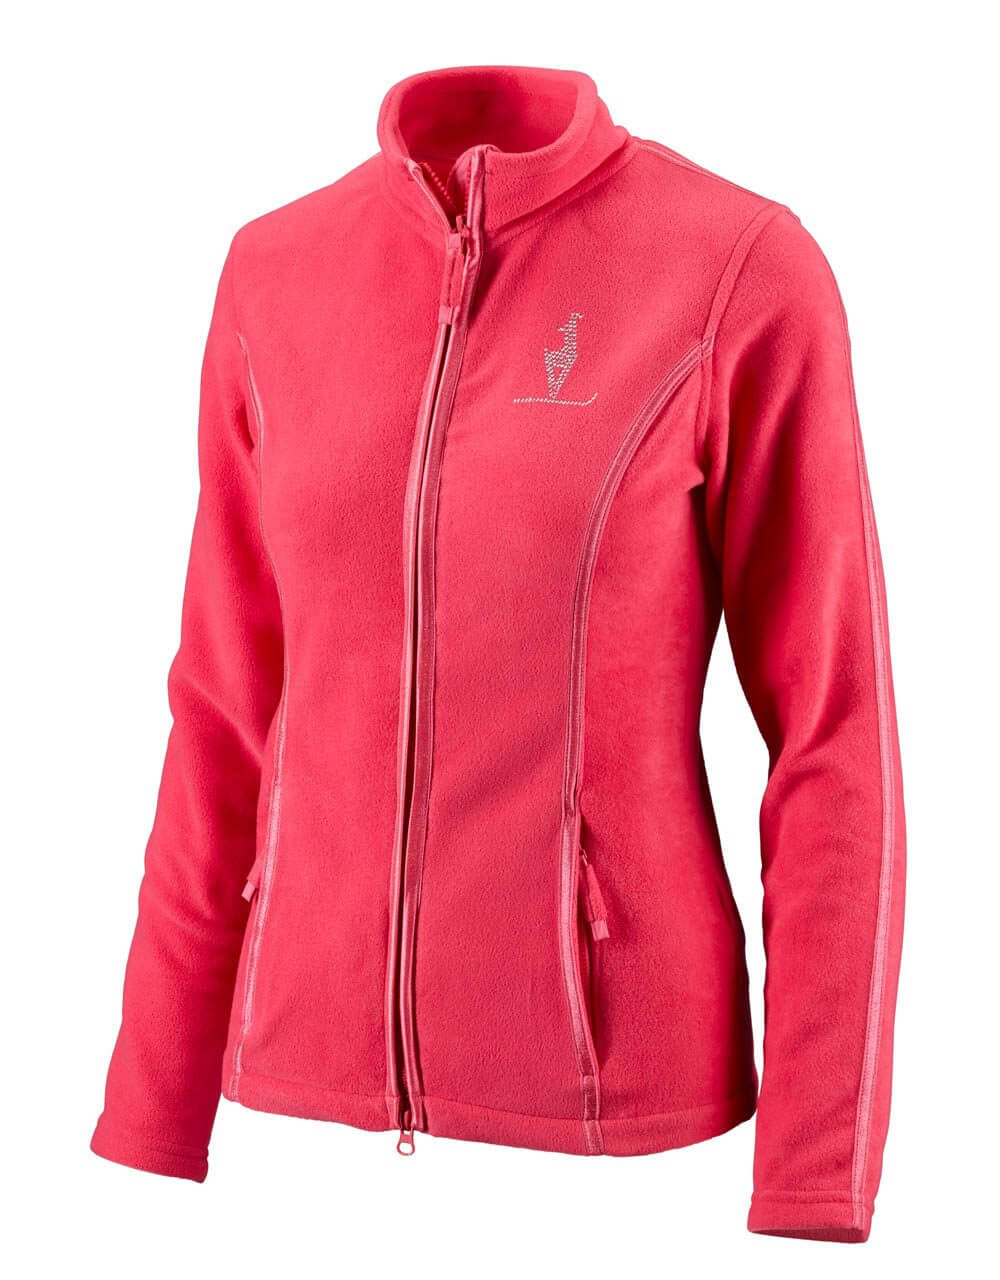 687415732 Damen Fleecejacke pink